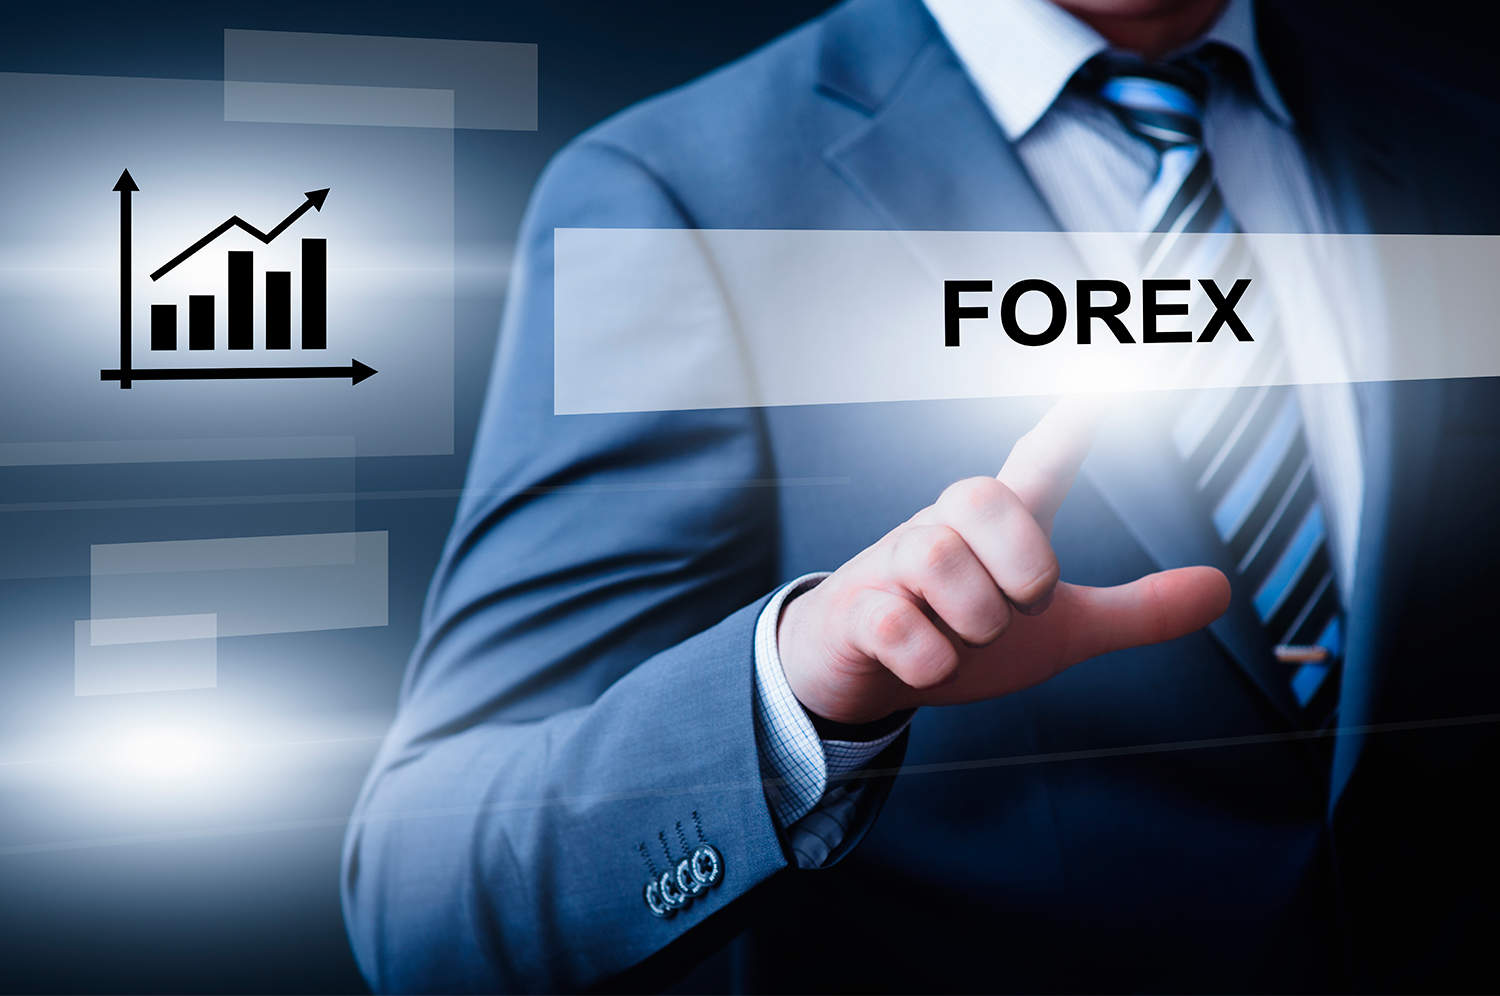 Essay on forex markets